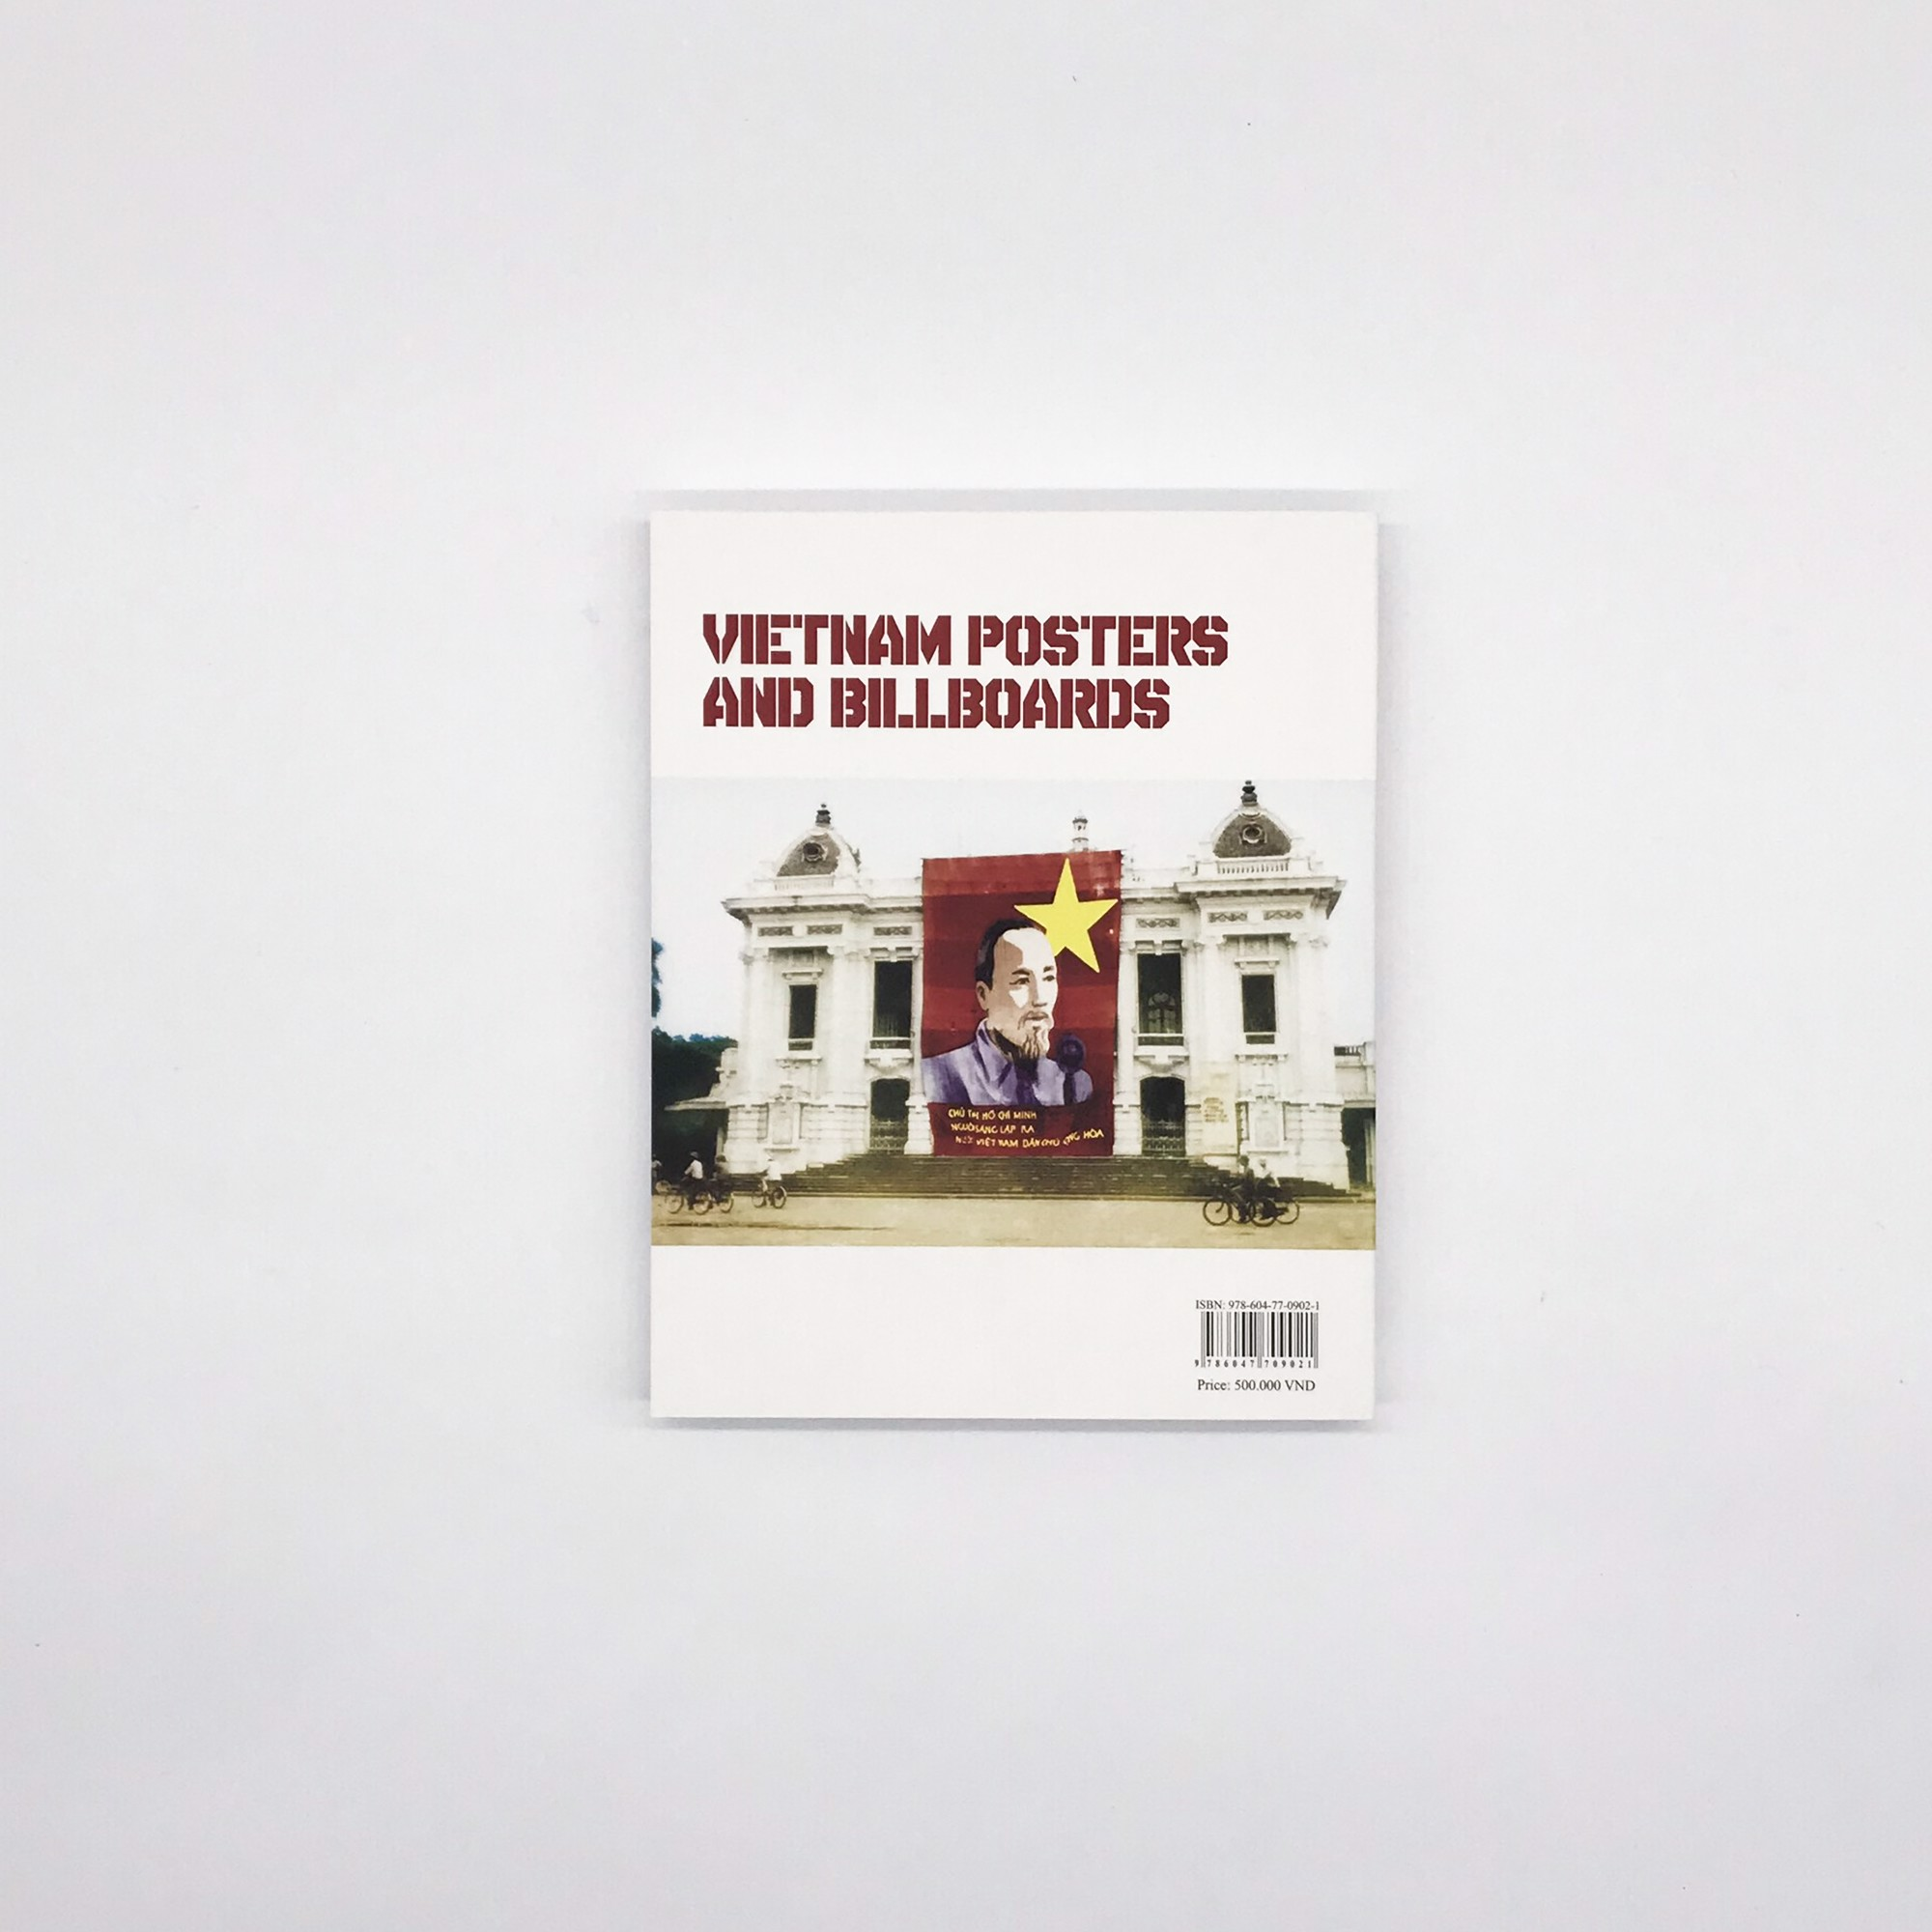 Vietnam Posters and Billboards